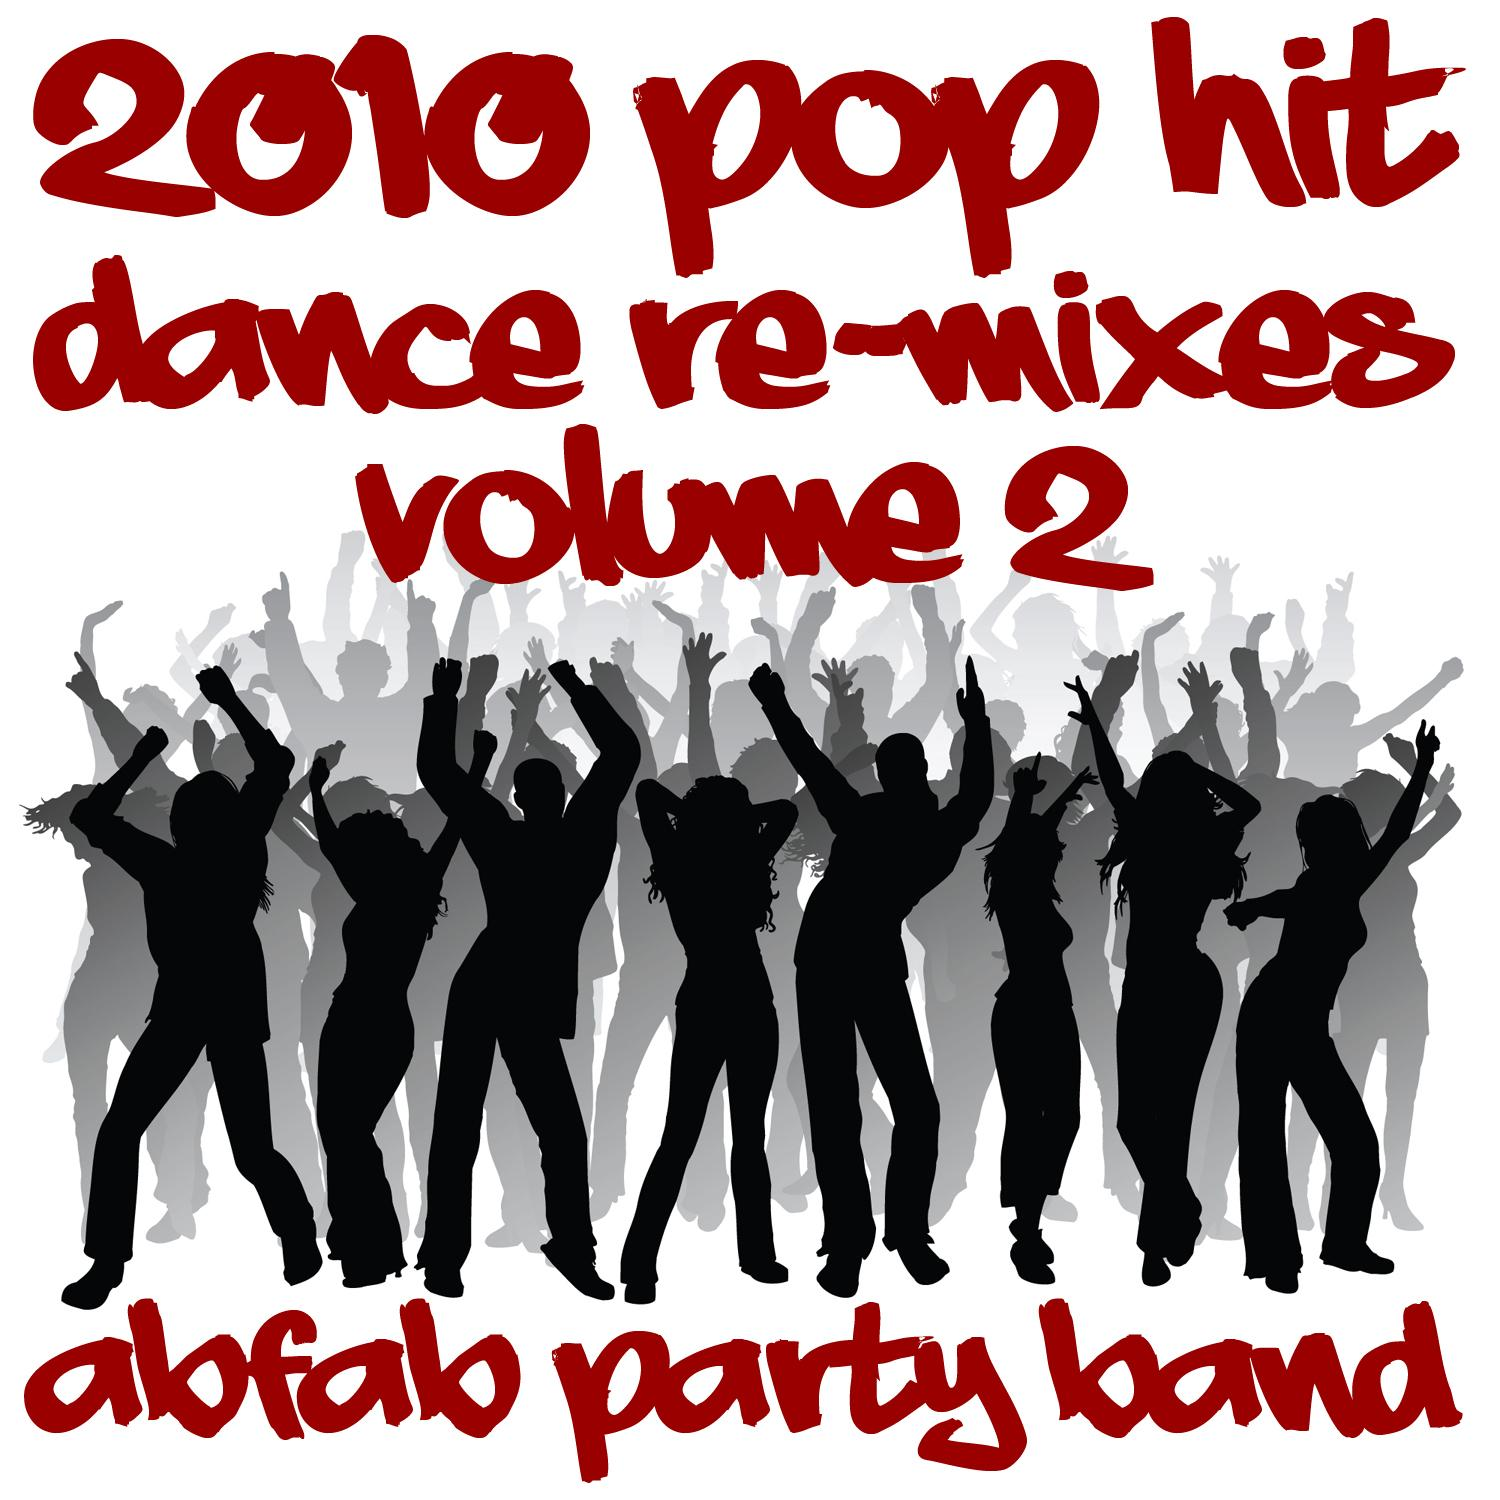 2010 Pop Hit Dance Re-Mixes Vol. 2